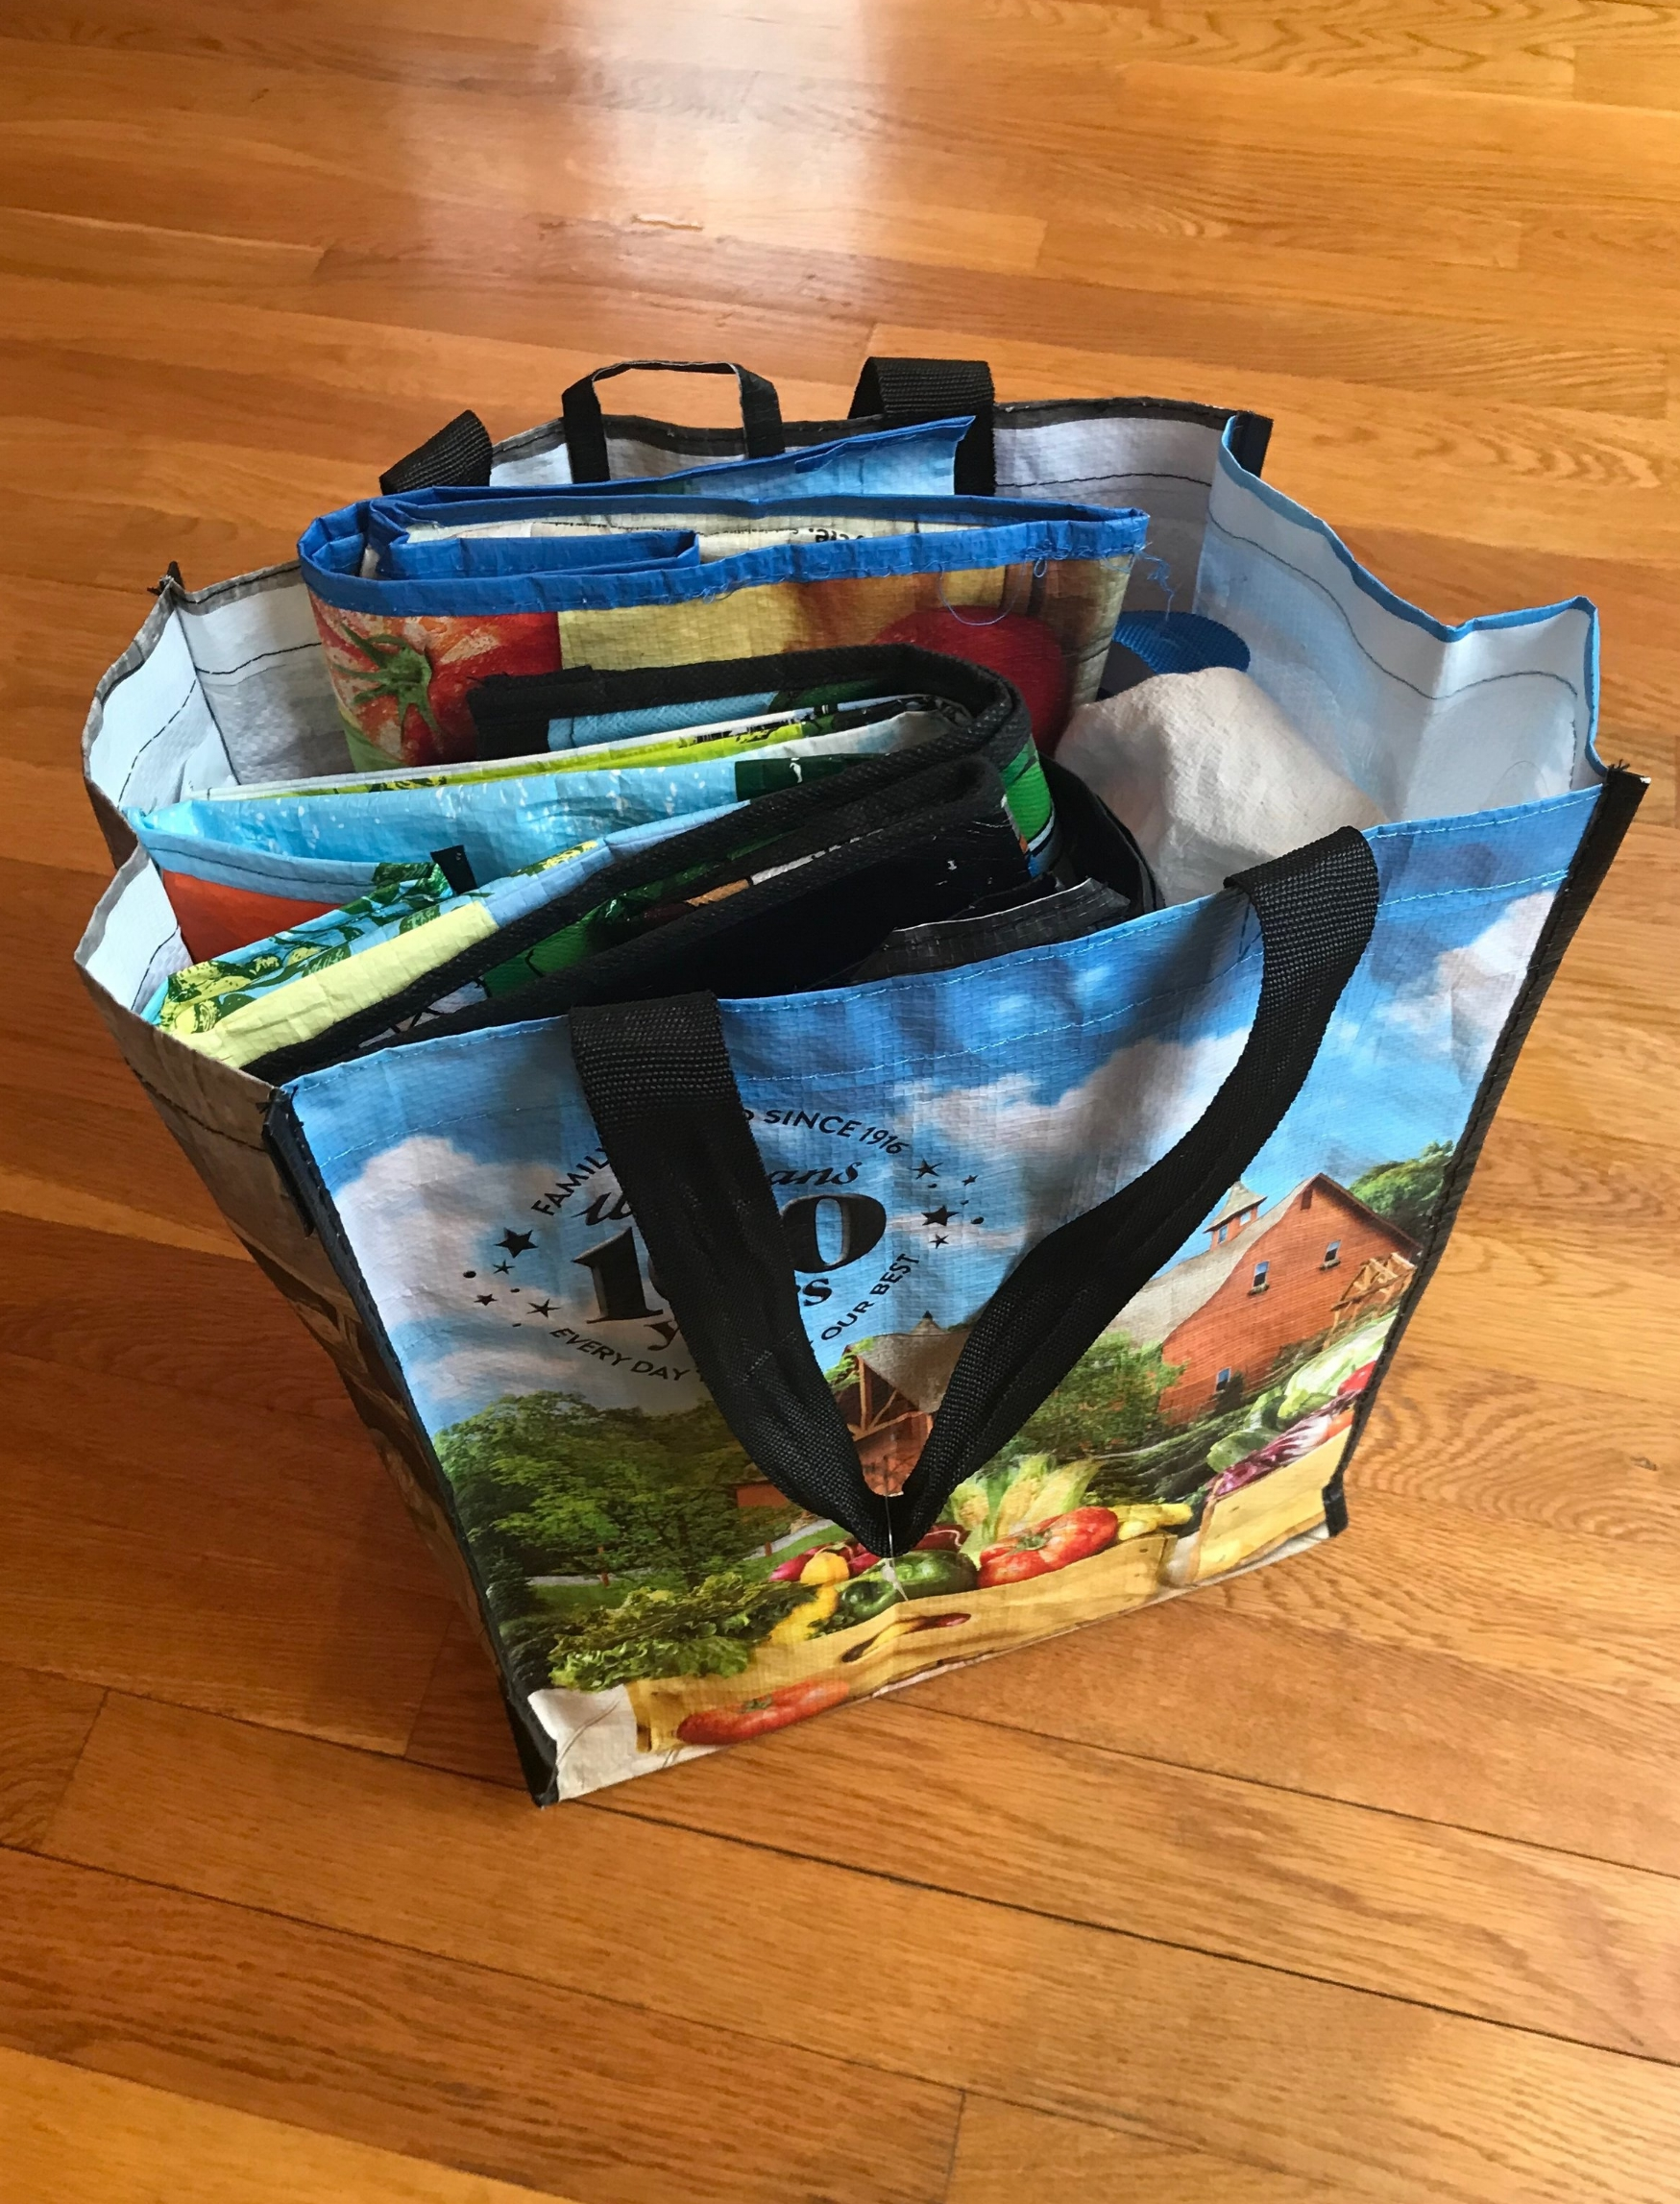 I keep my shopping bags,produce bags, and bulk bags altogether within one bag hanging in my mud room. Sometimes, I also leave a few bags in my trunk for last minute shopping trips.